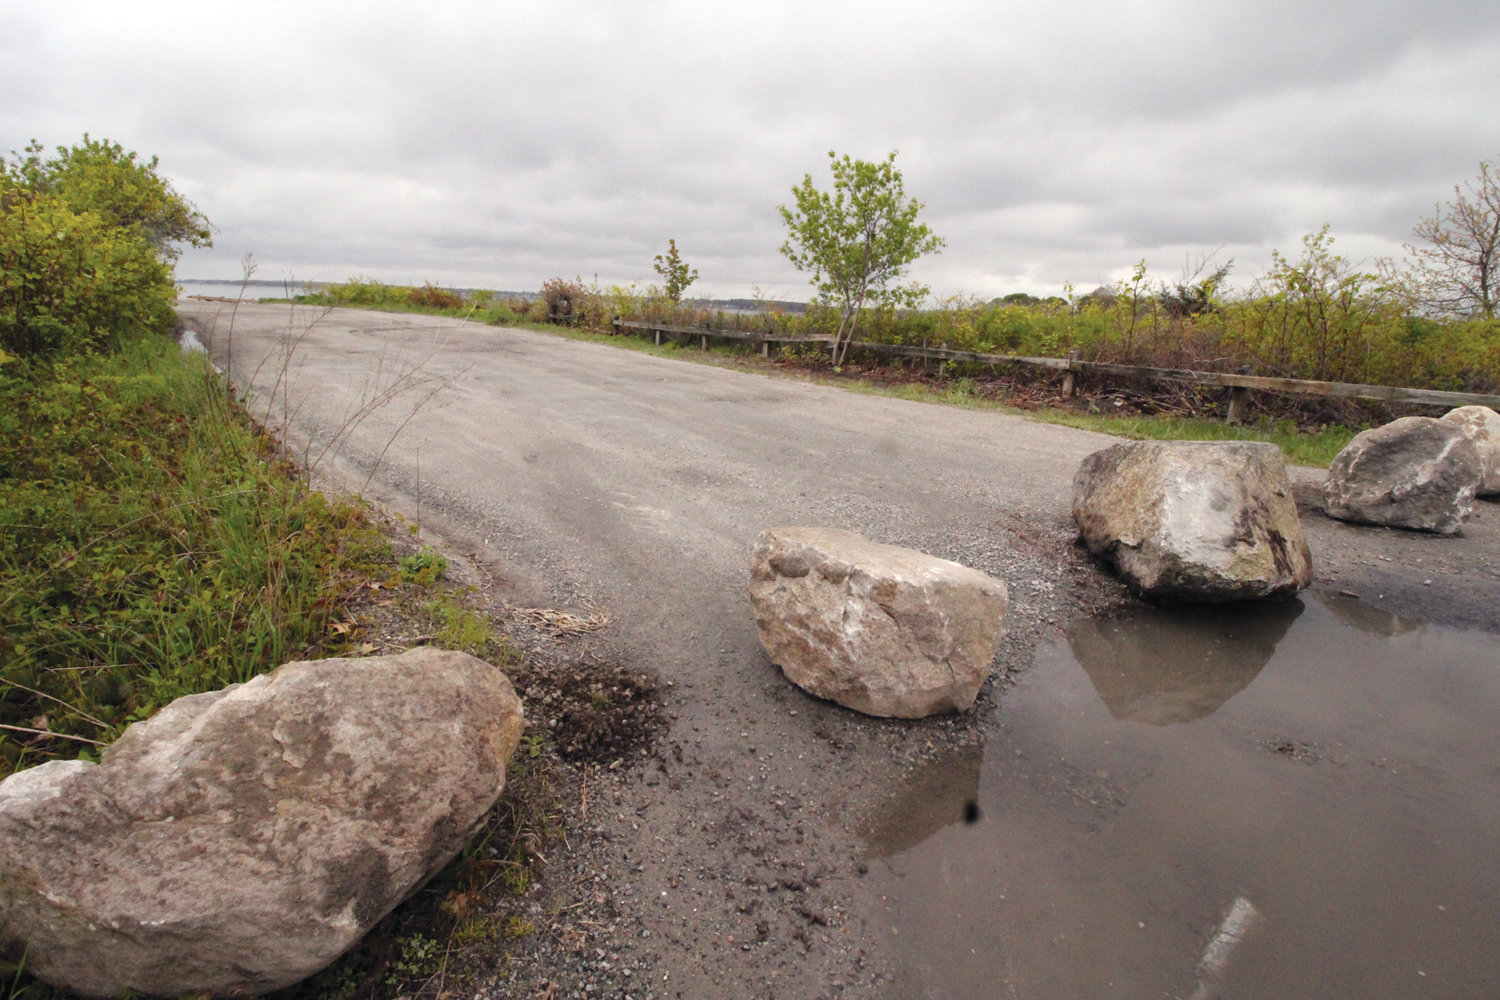 HERE ON TUESDAY, GONE WEDNESDAY? The city Department of Public Works placed boulders to block the entrance to the Seaview Drive parking lot in Oakland Beach Tuesday morning. On Wednesday afternoon, Councilwoman Donna Travis said the rocks would be removed pending a public hearing.